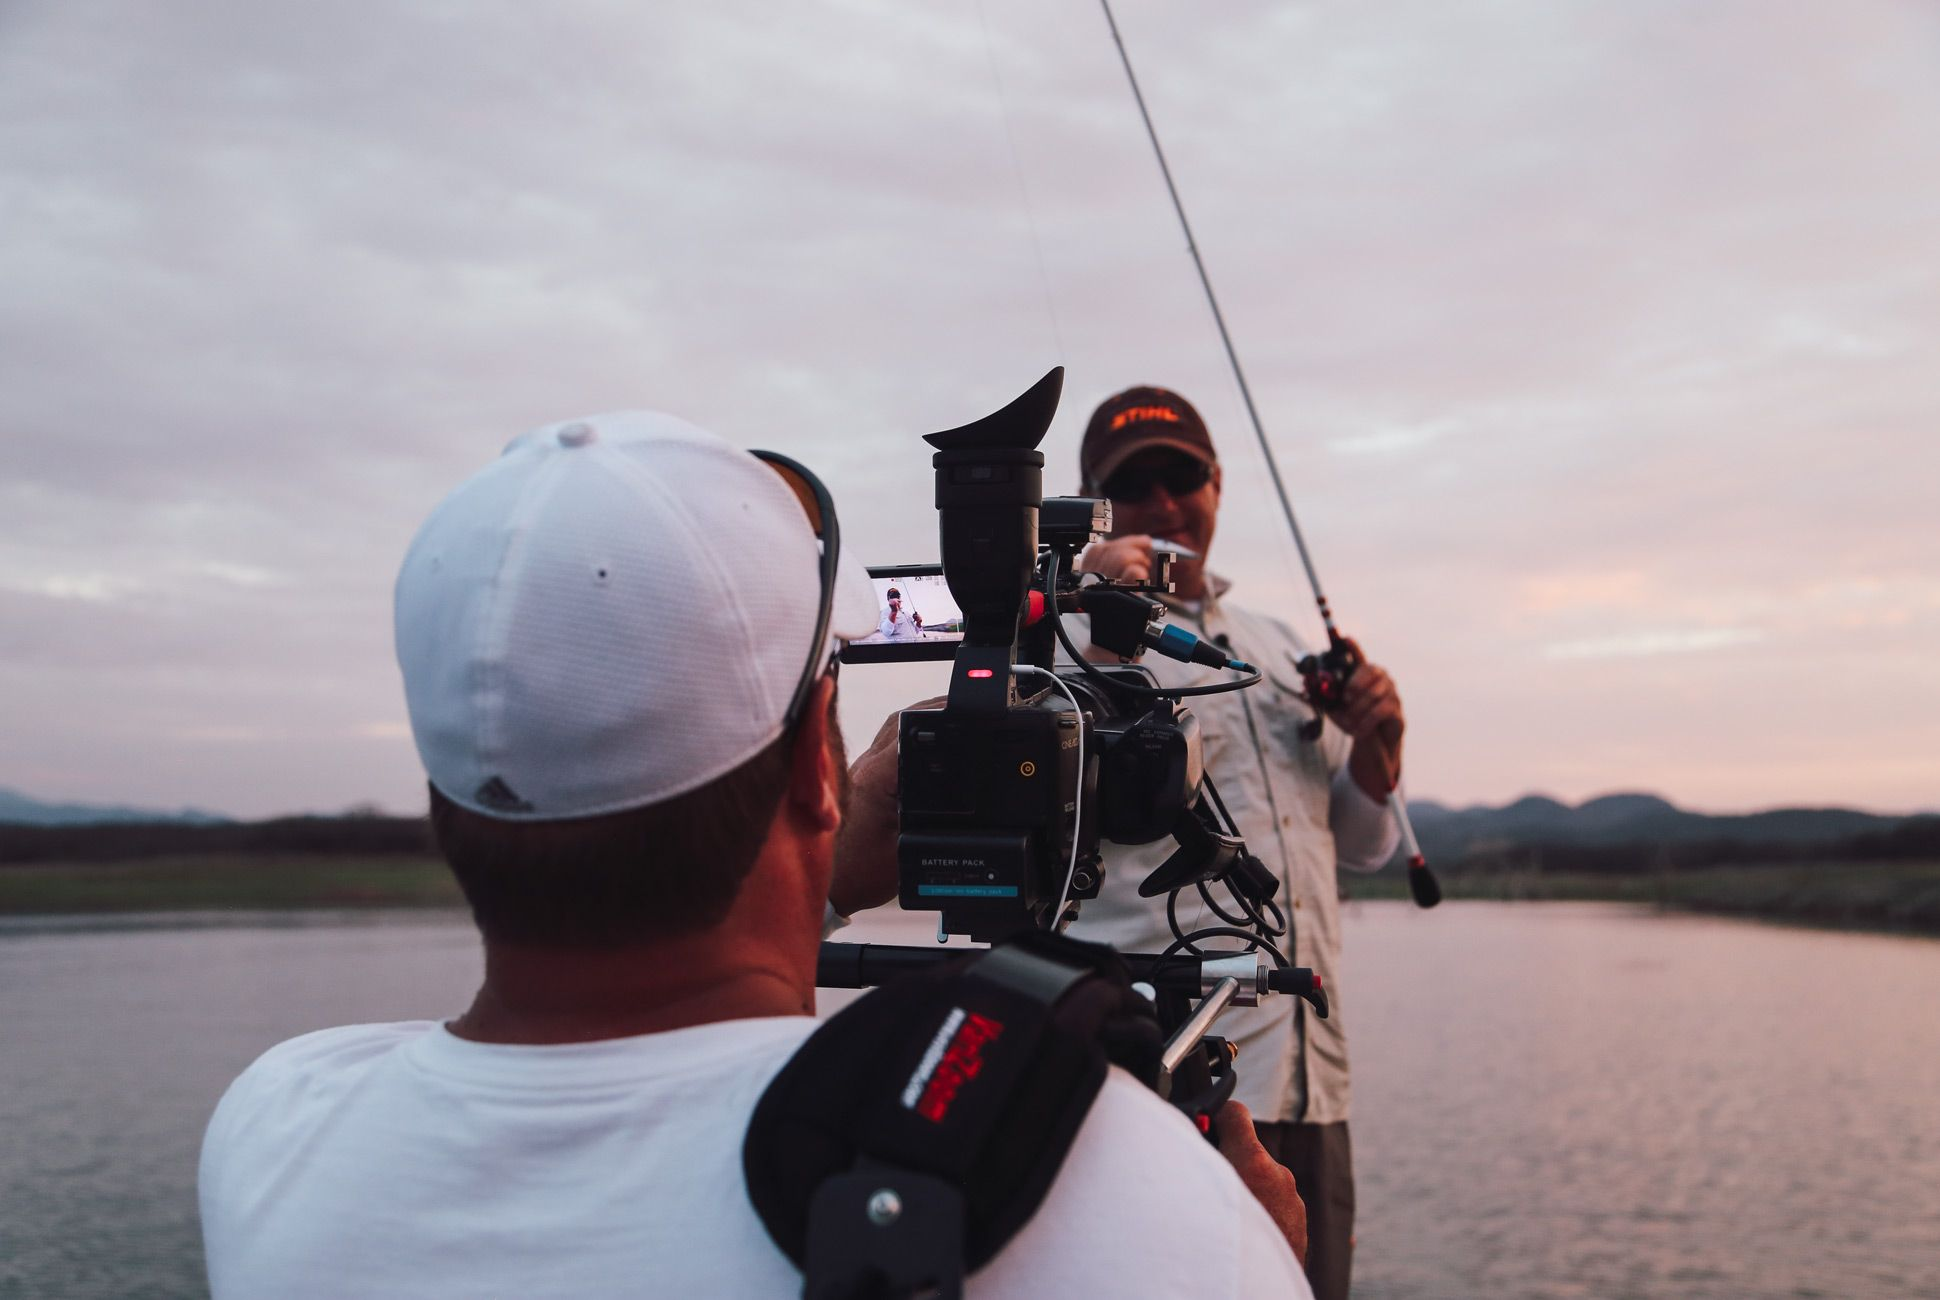 Producer, editor and cameraman Jim Kramer is constantly behind host Joe Thomas as he fishes, stalking the scene with his surprisingly small Sony XD camera on a shoulder mount.